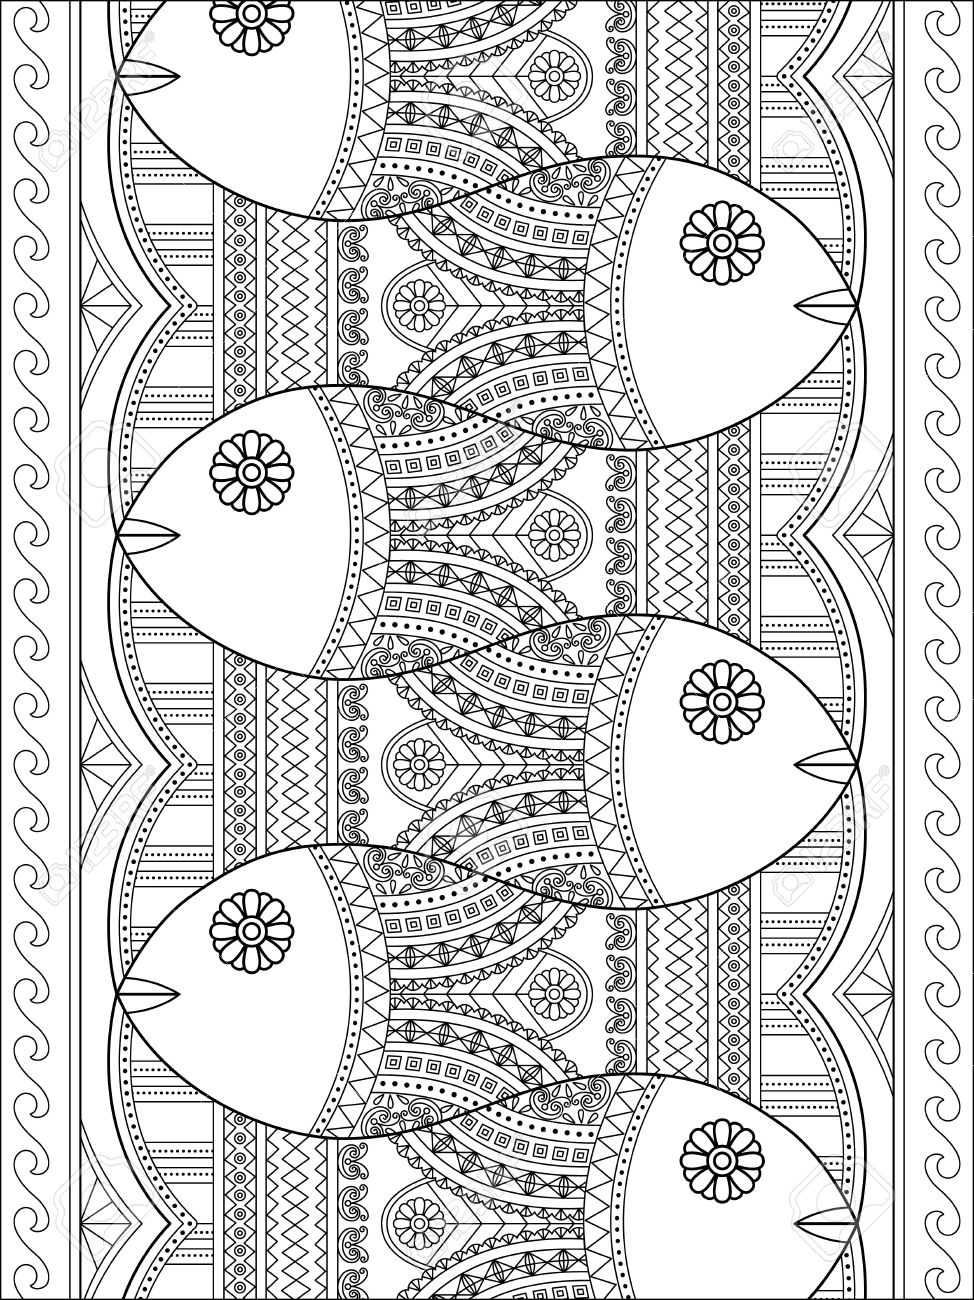 - Lovely Adult Coloring Page, Cute Fish With Geometric Patterns